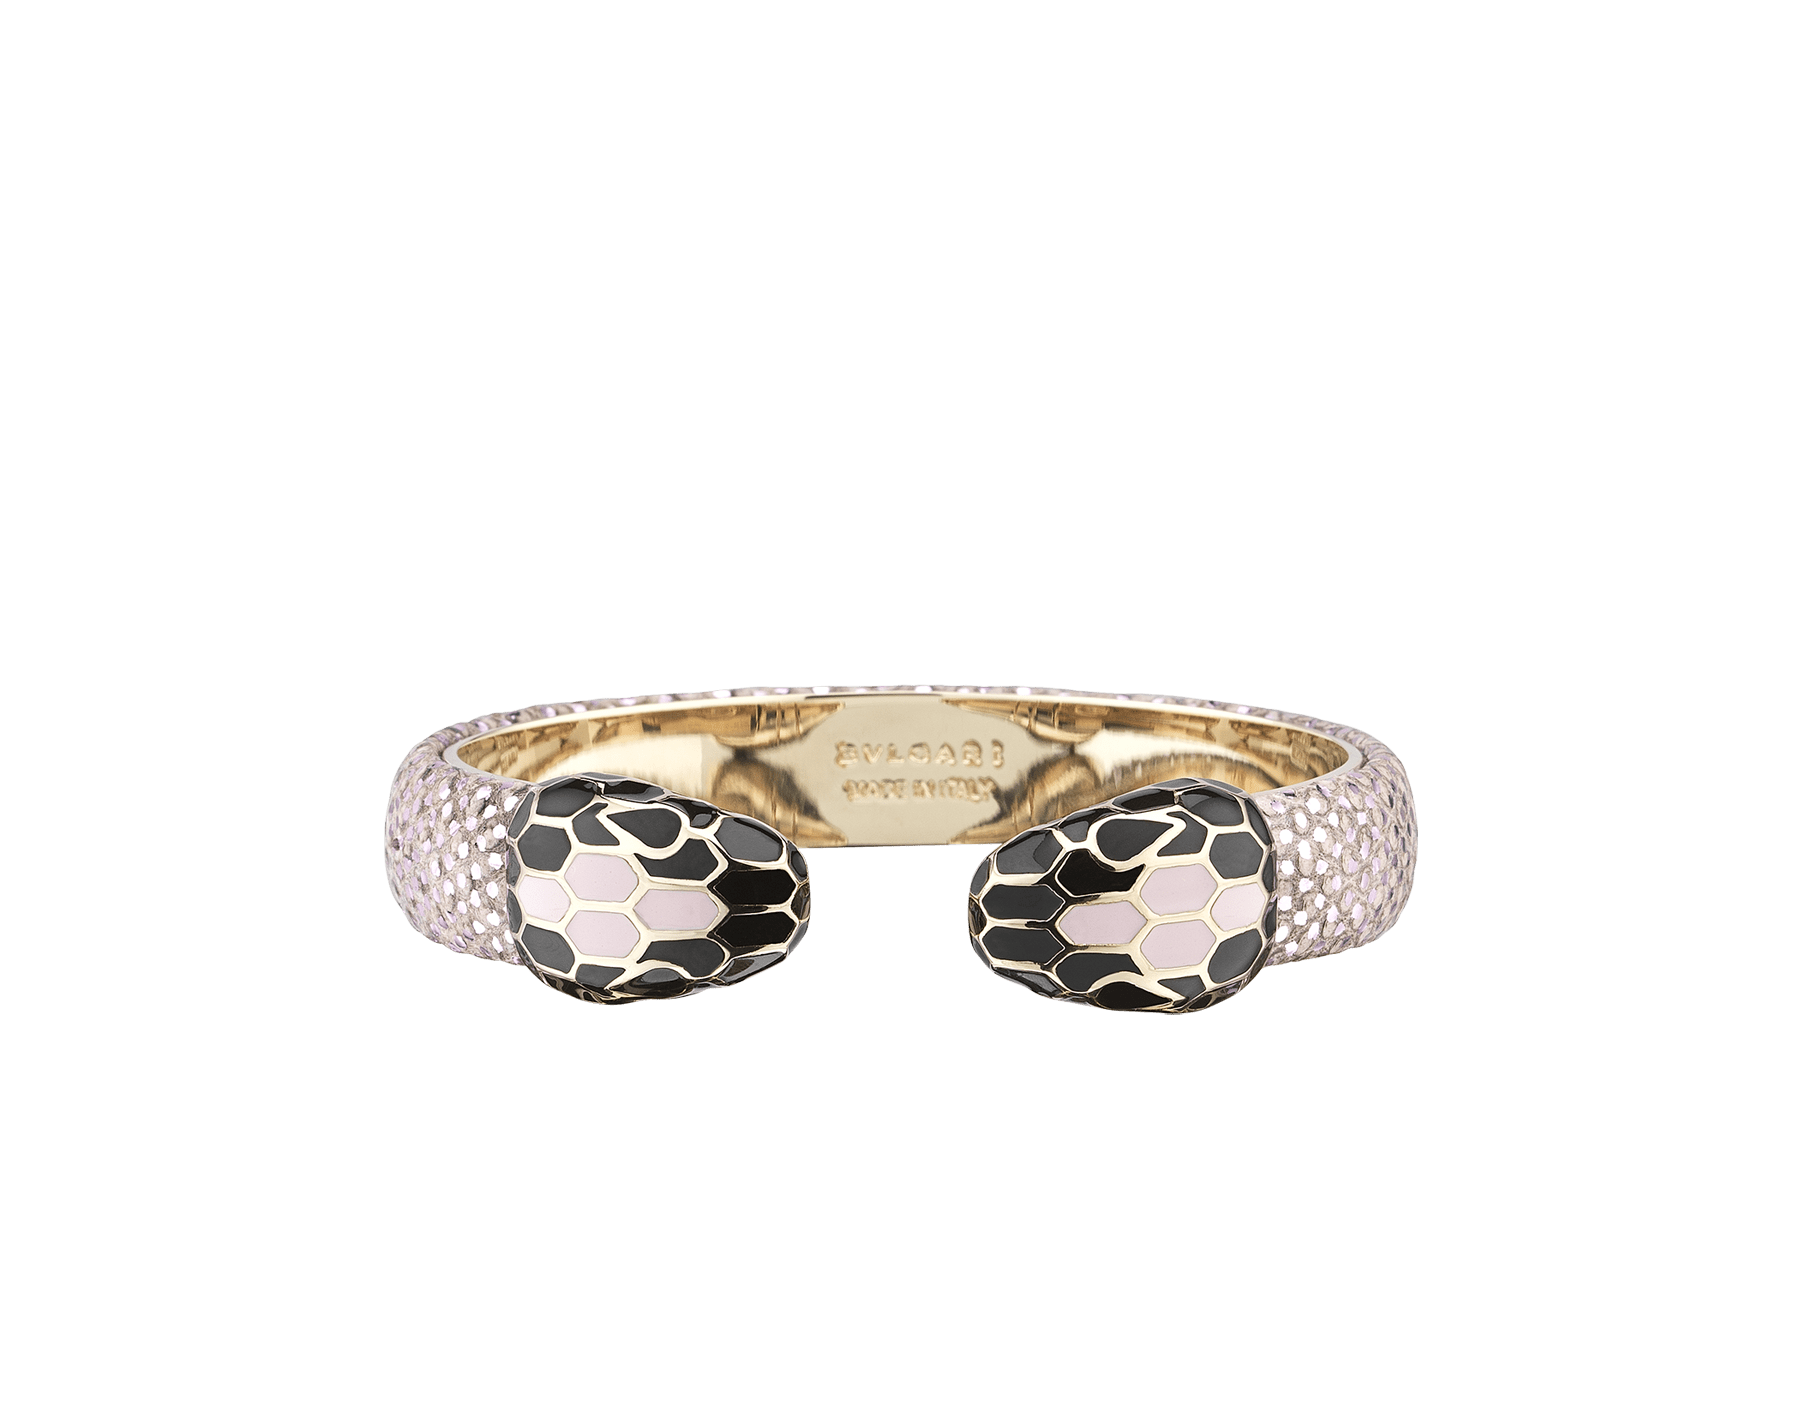 Serpenti Forever bangle bracelet in rosa di francia metallic karung skin, with brass light gold plated hardware. Iconic contrasting snakehead décor in black and rosa di francia enamel, with black enamel eyes. SPContr-MK-RdF image 1